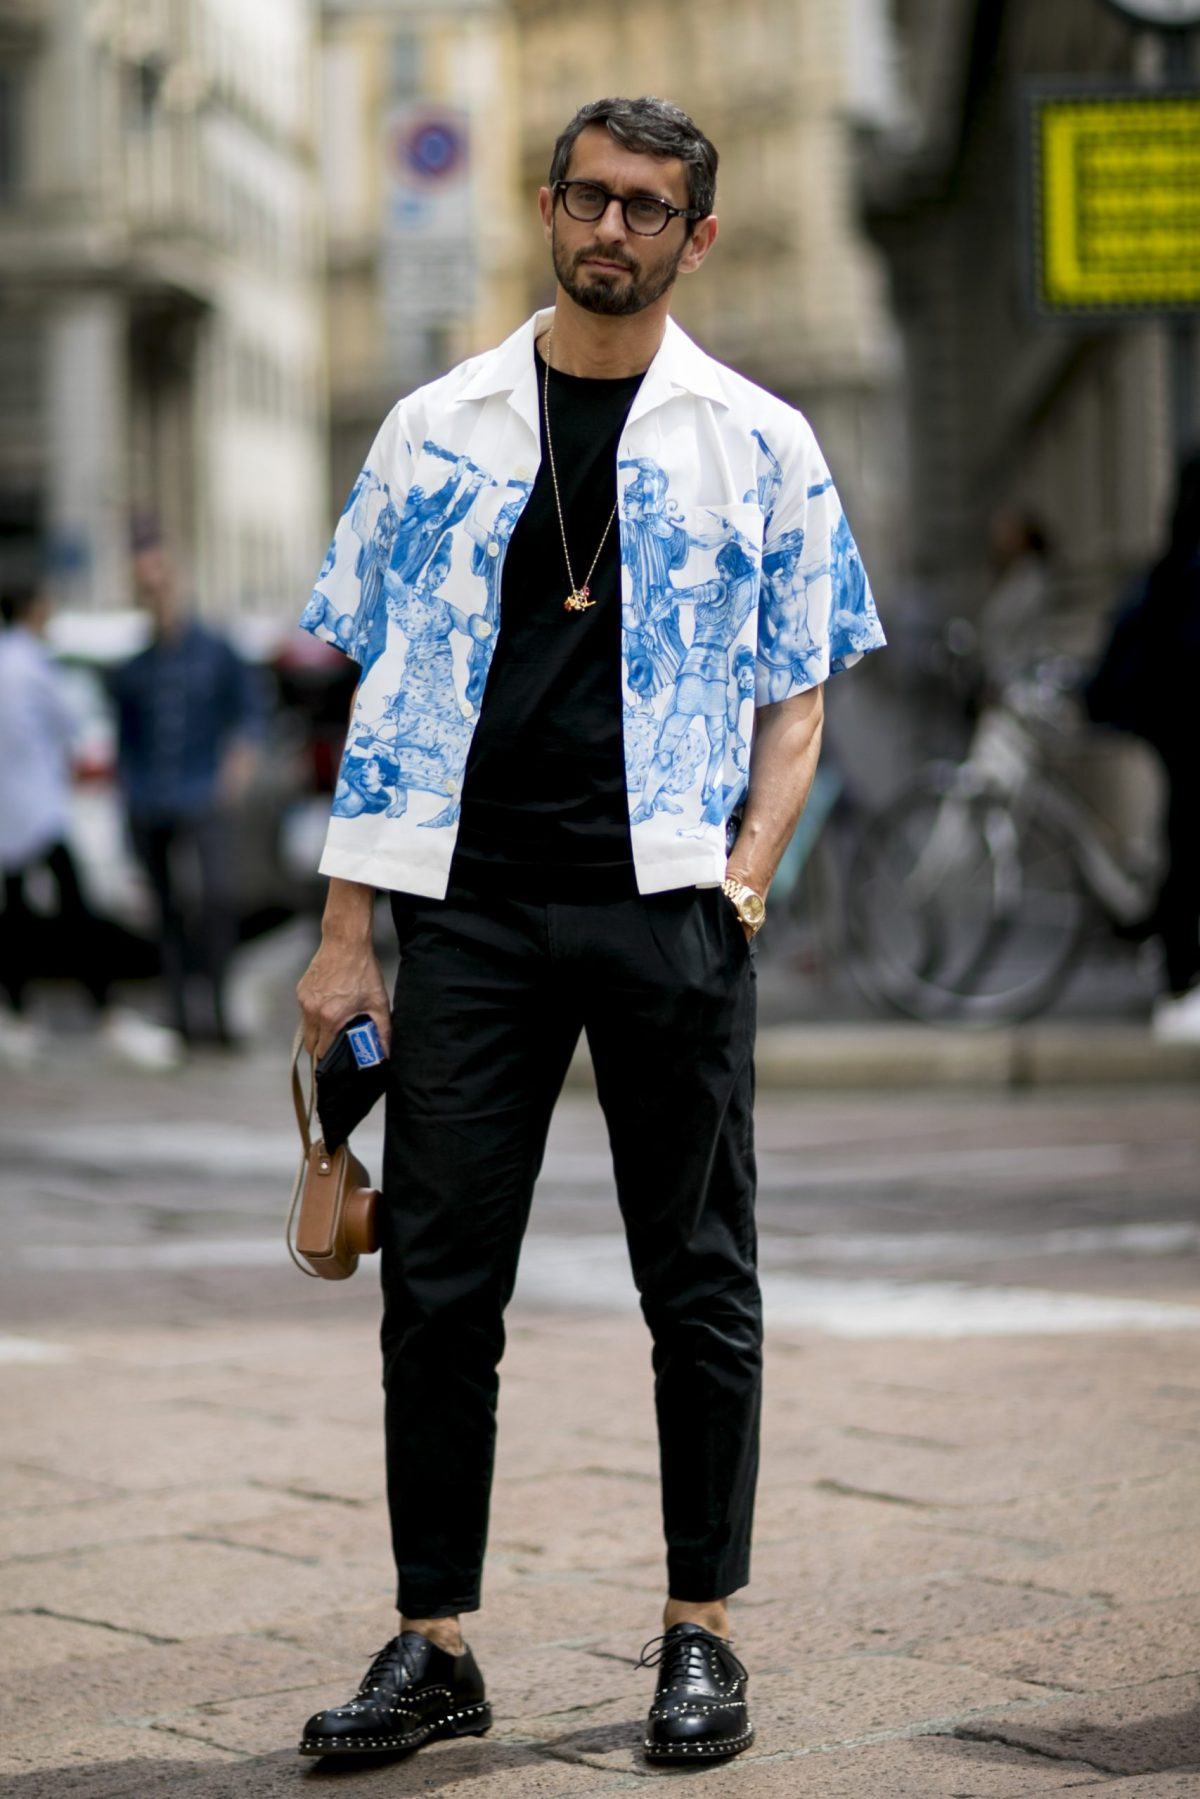 the best street style from milan mens fashion week ss17